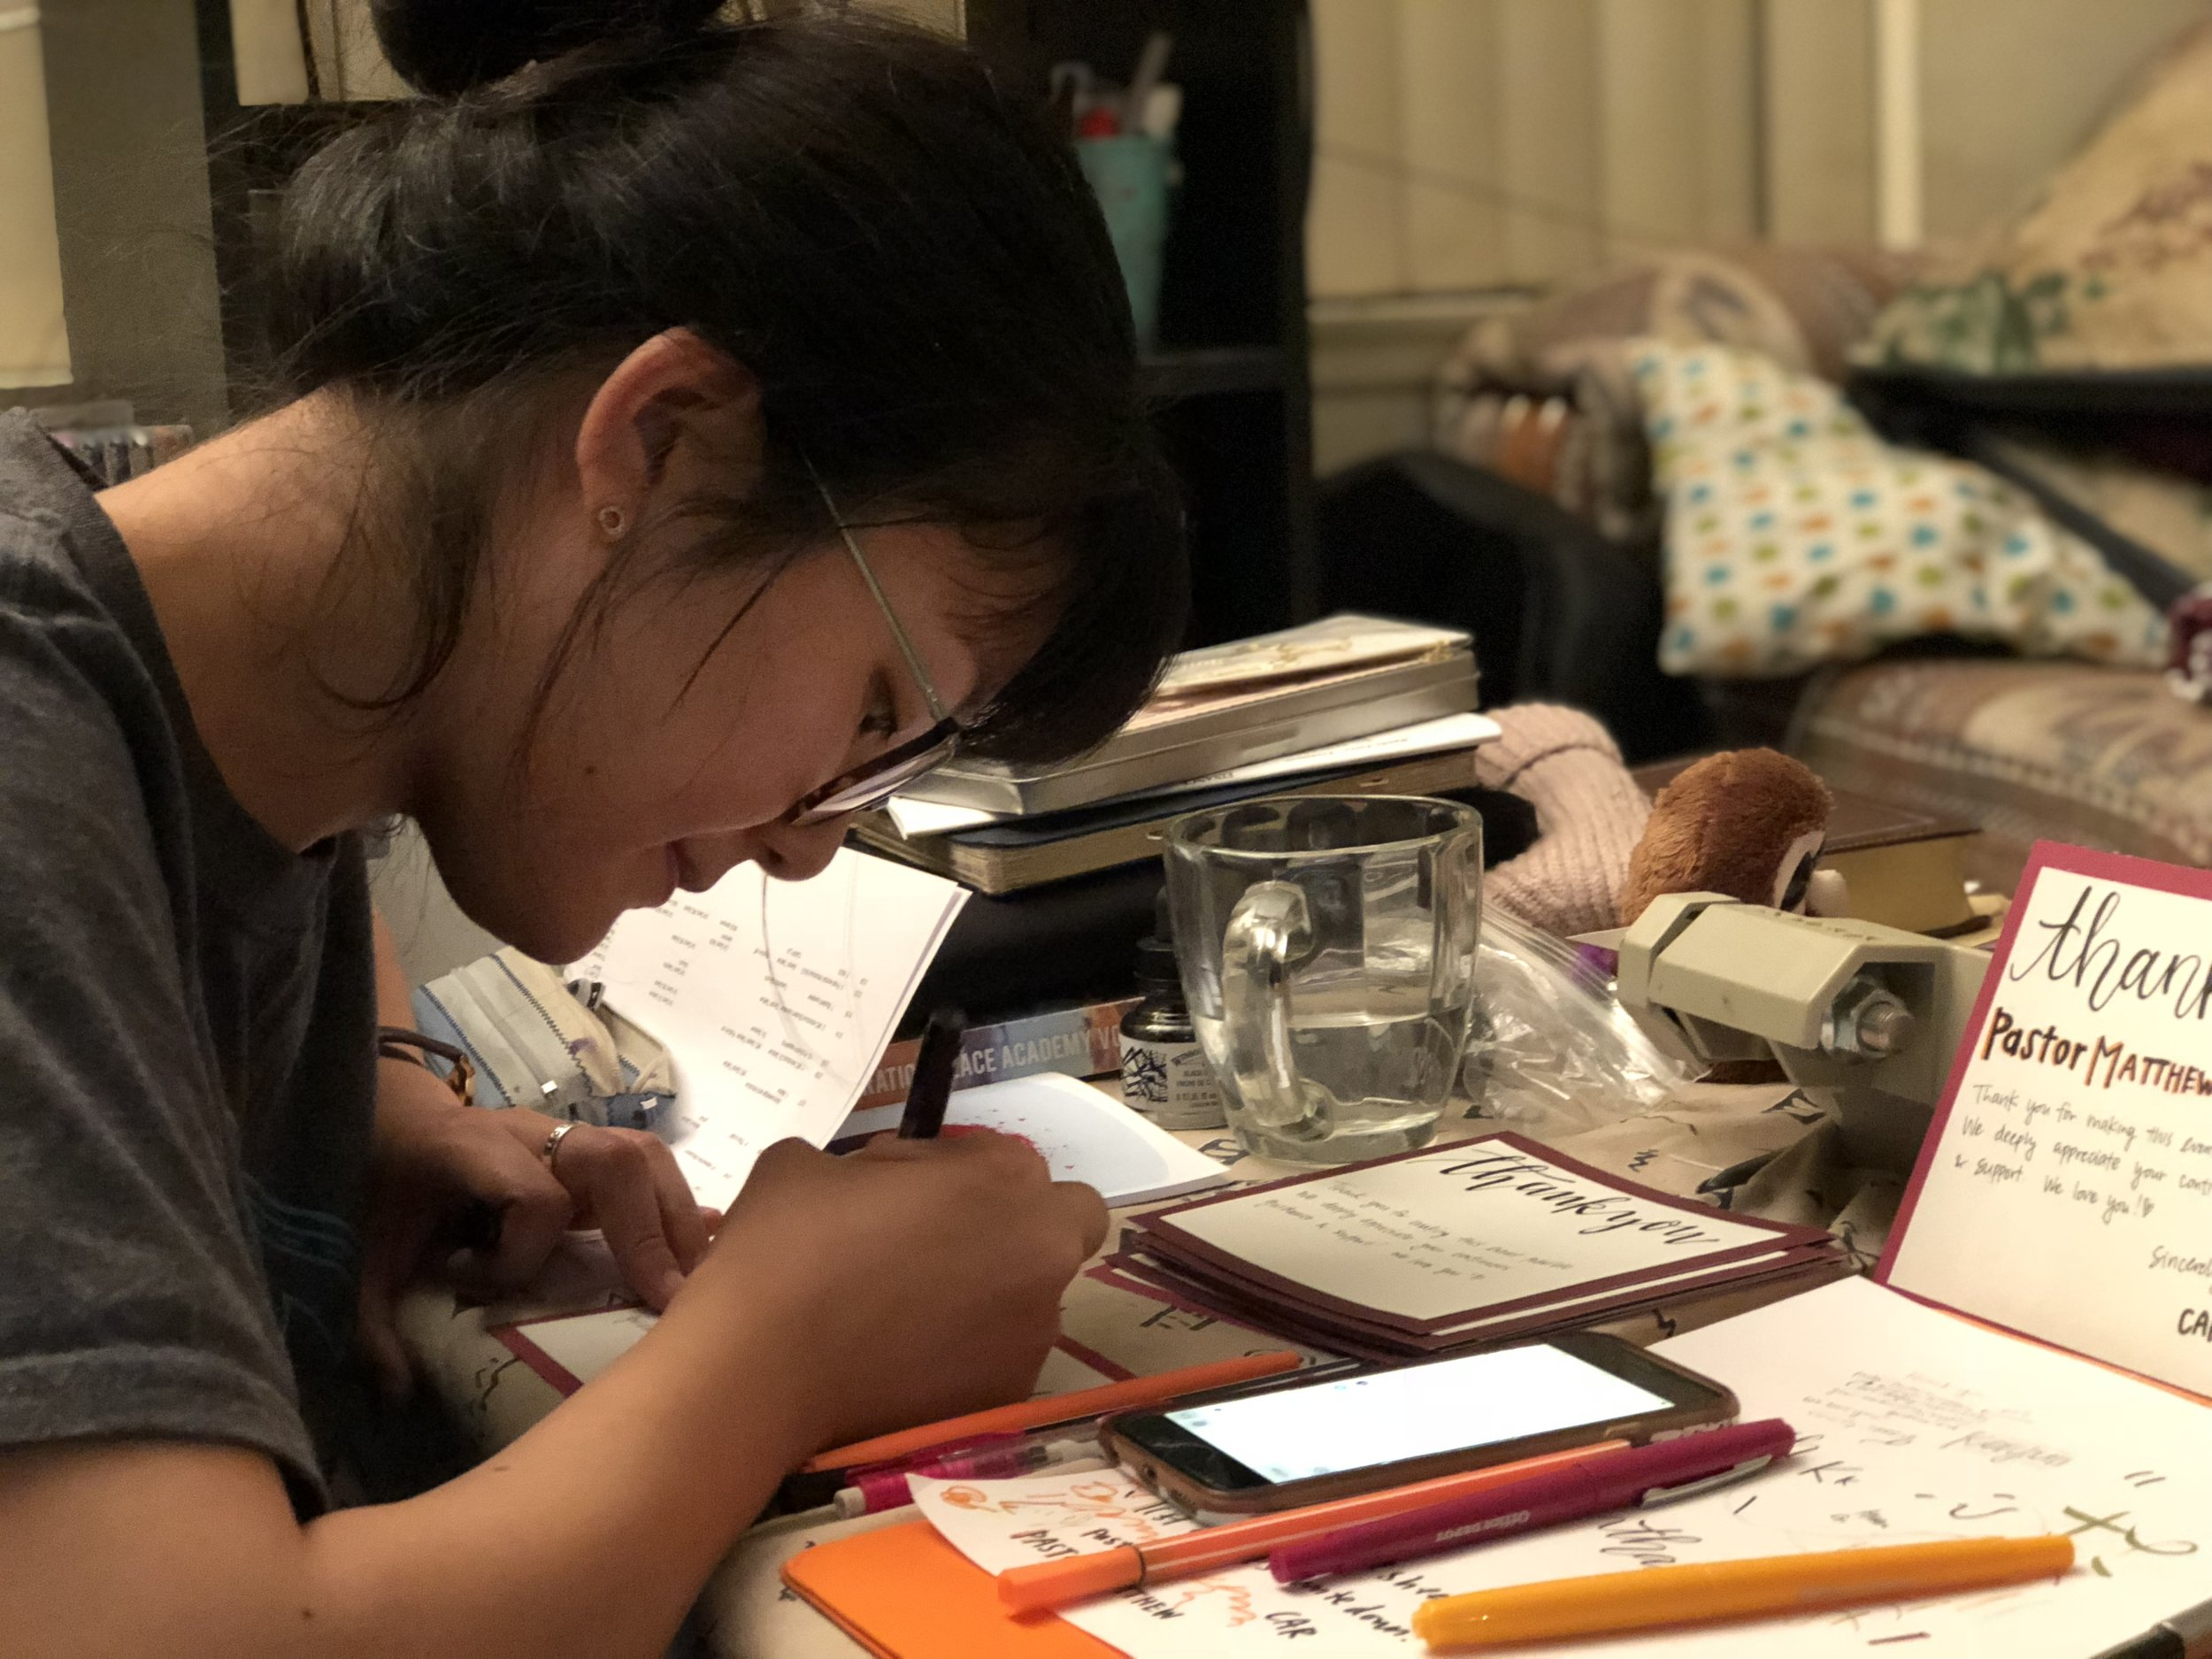 Satomi spent extra time to prepare Thank You cards for the VIPs at the Colloquium.